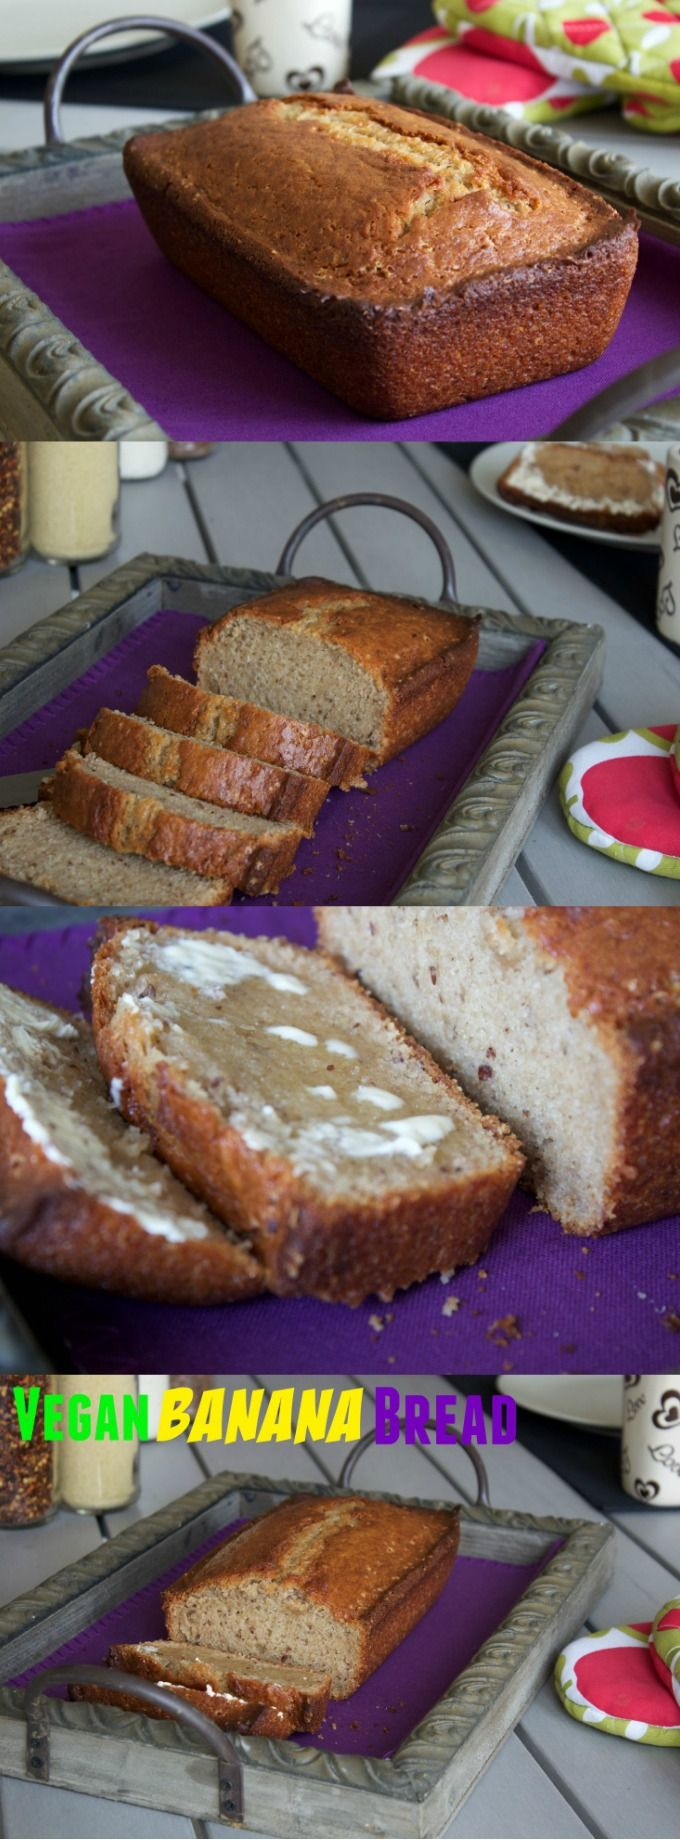 Simple Vegan Banana Bread - crispy on the outside, moist on the inside and delicious served warm from the oven with vegan butter!